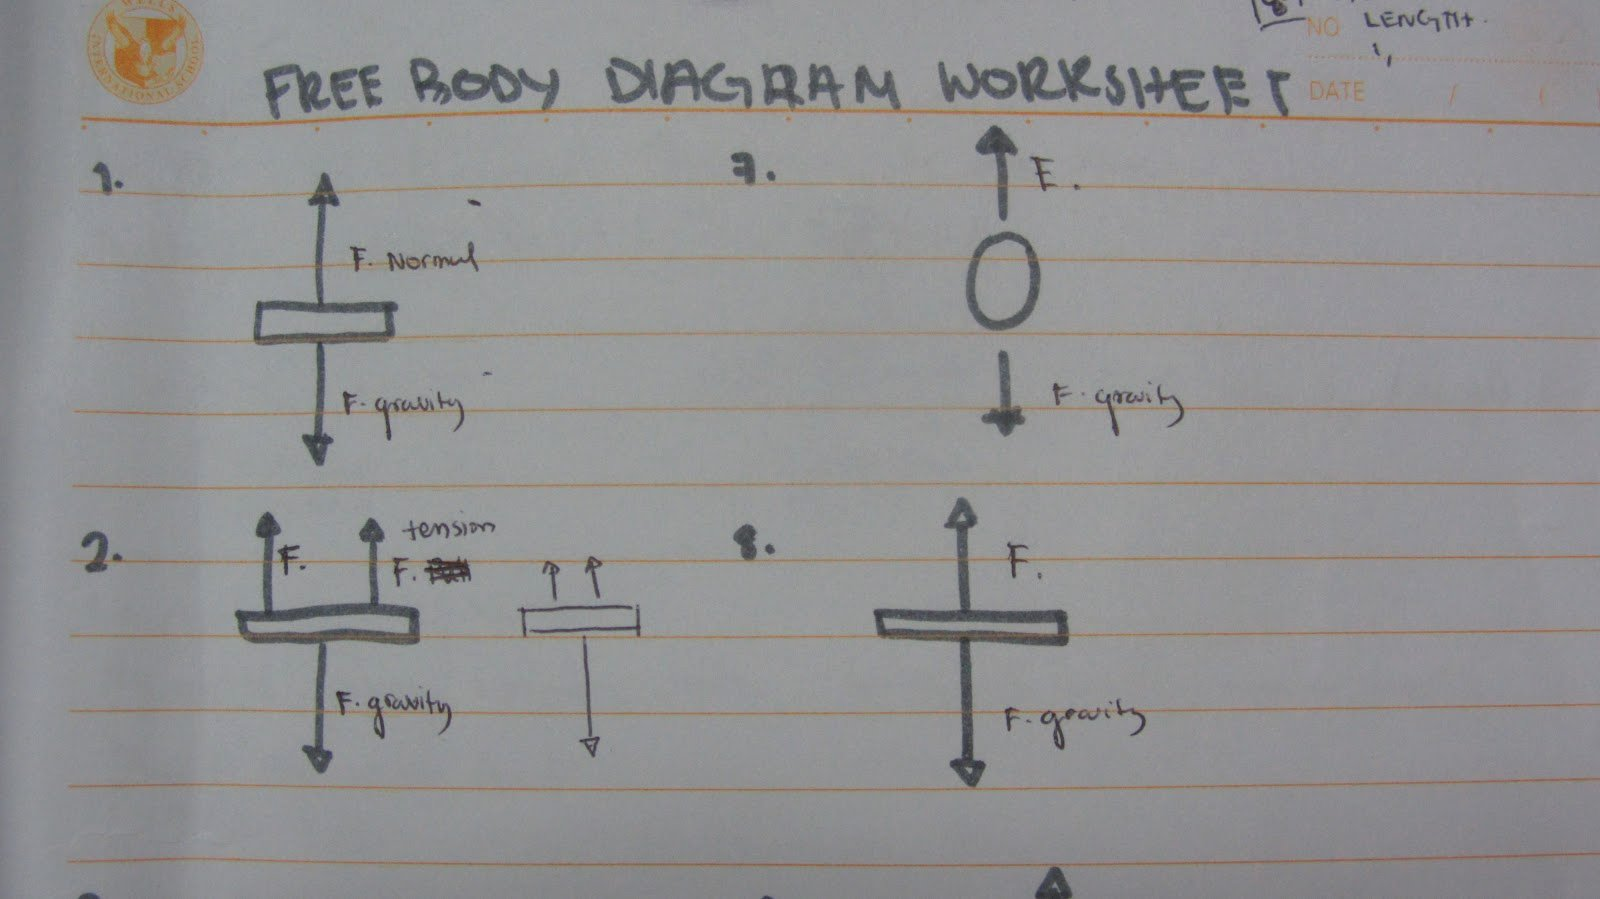 Free Body Diagram Worksheet Answers Elegant Amira S School Blog Free Body Diagram Worksheet